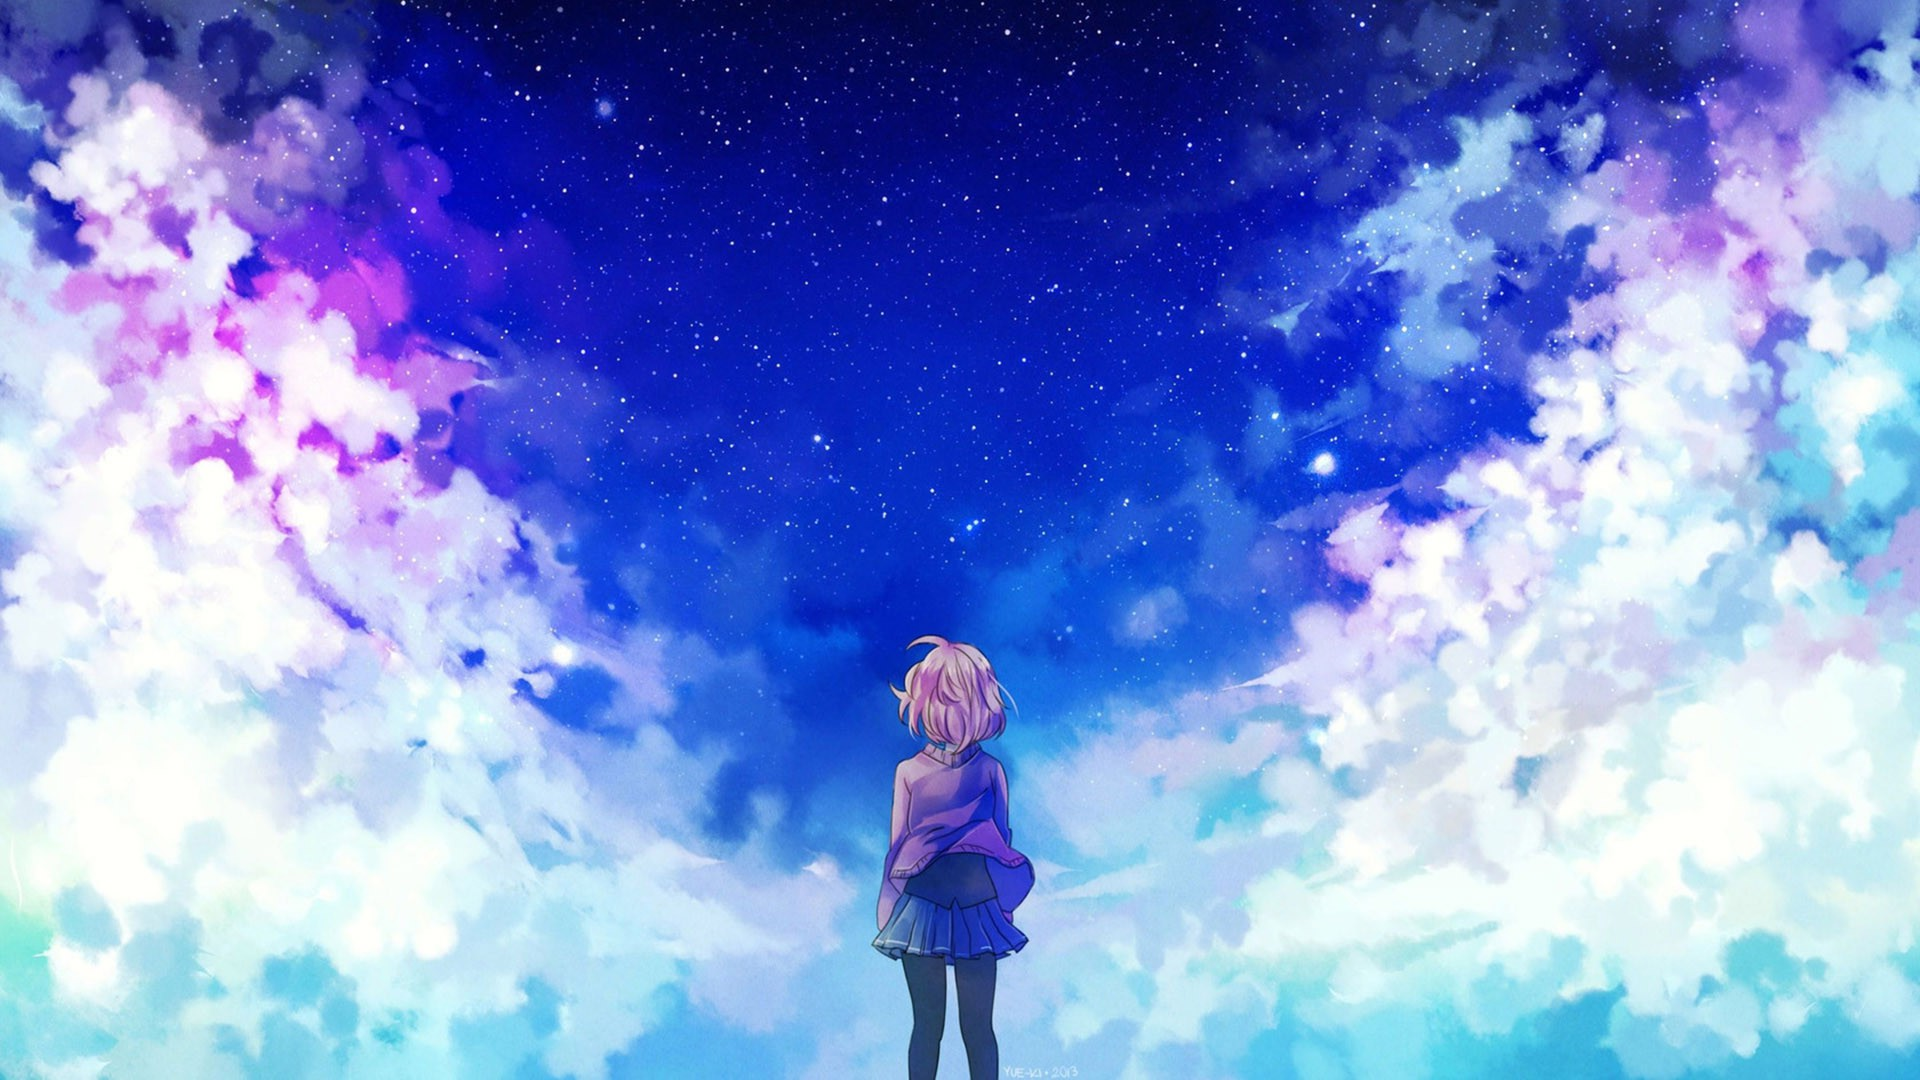 These desktop background (wallpaper) images contain the intellectual property of microsoft and other third parties. anime Girls, Clouds, Stars, Kyoukai No Kanata Wallpapers